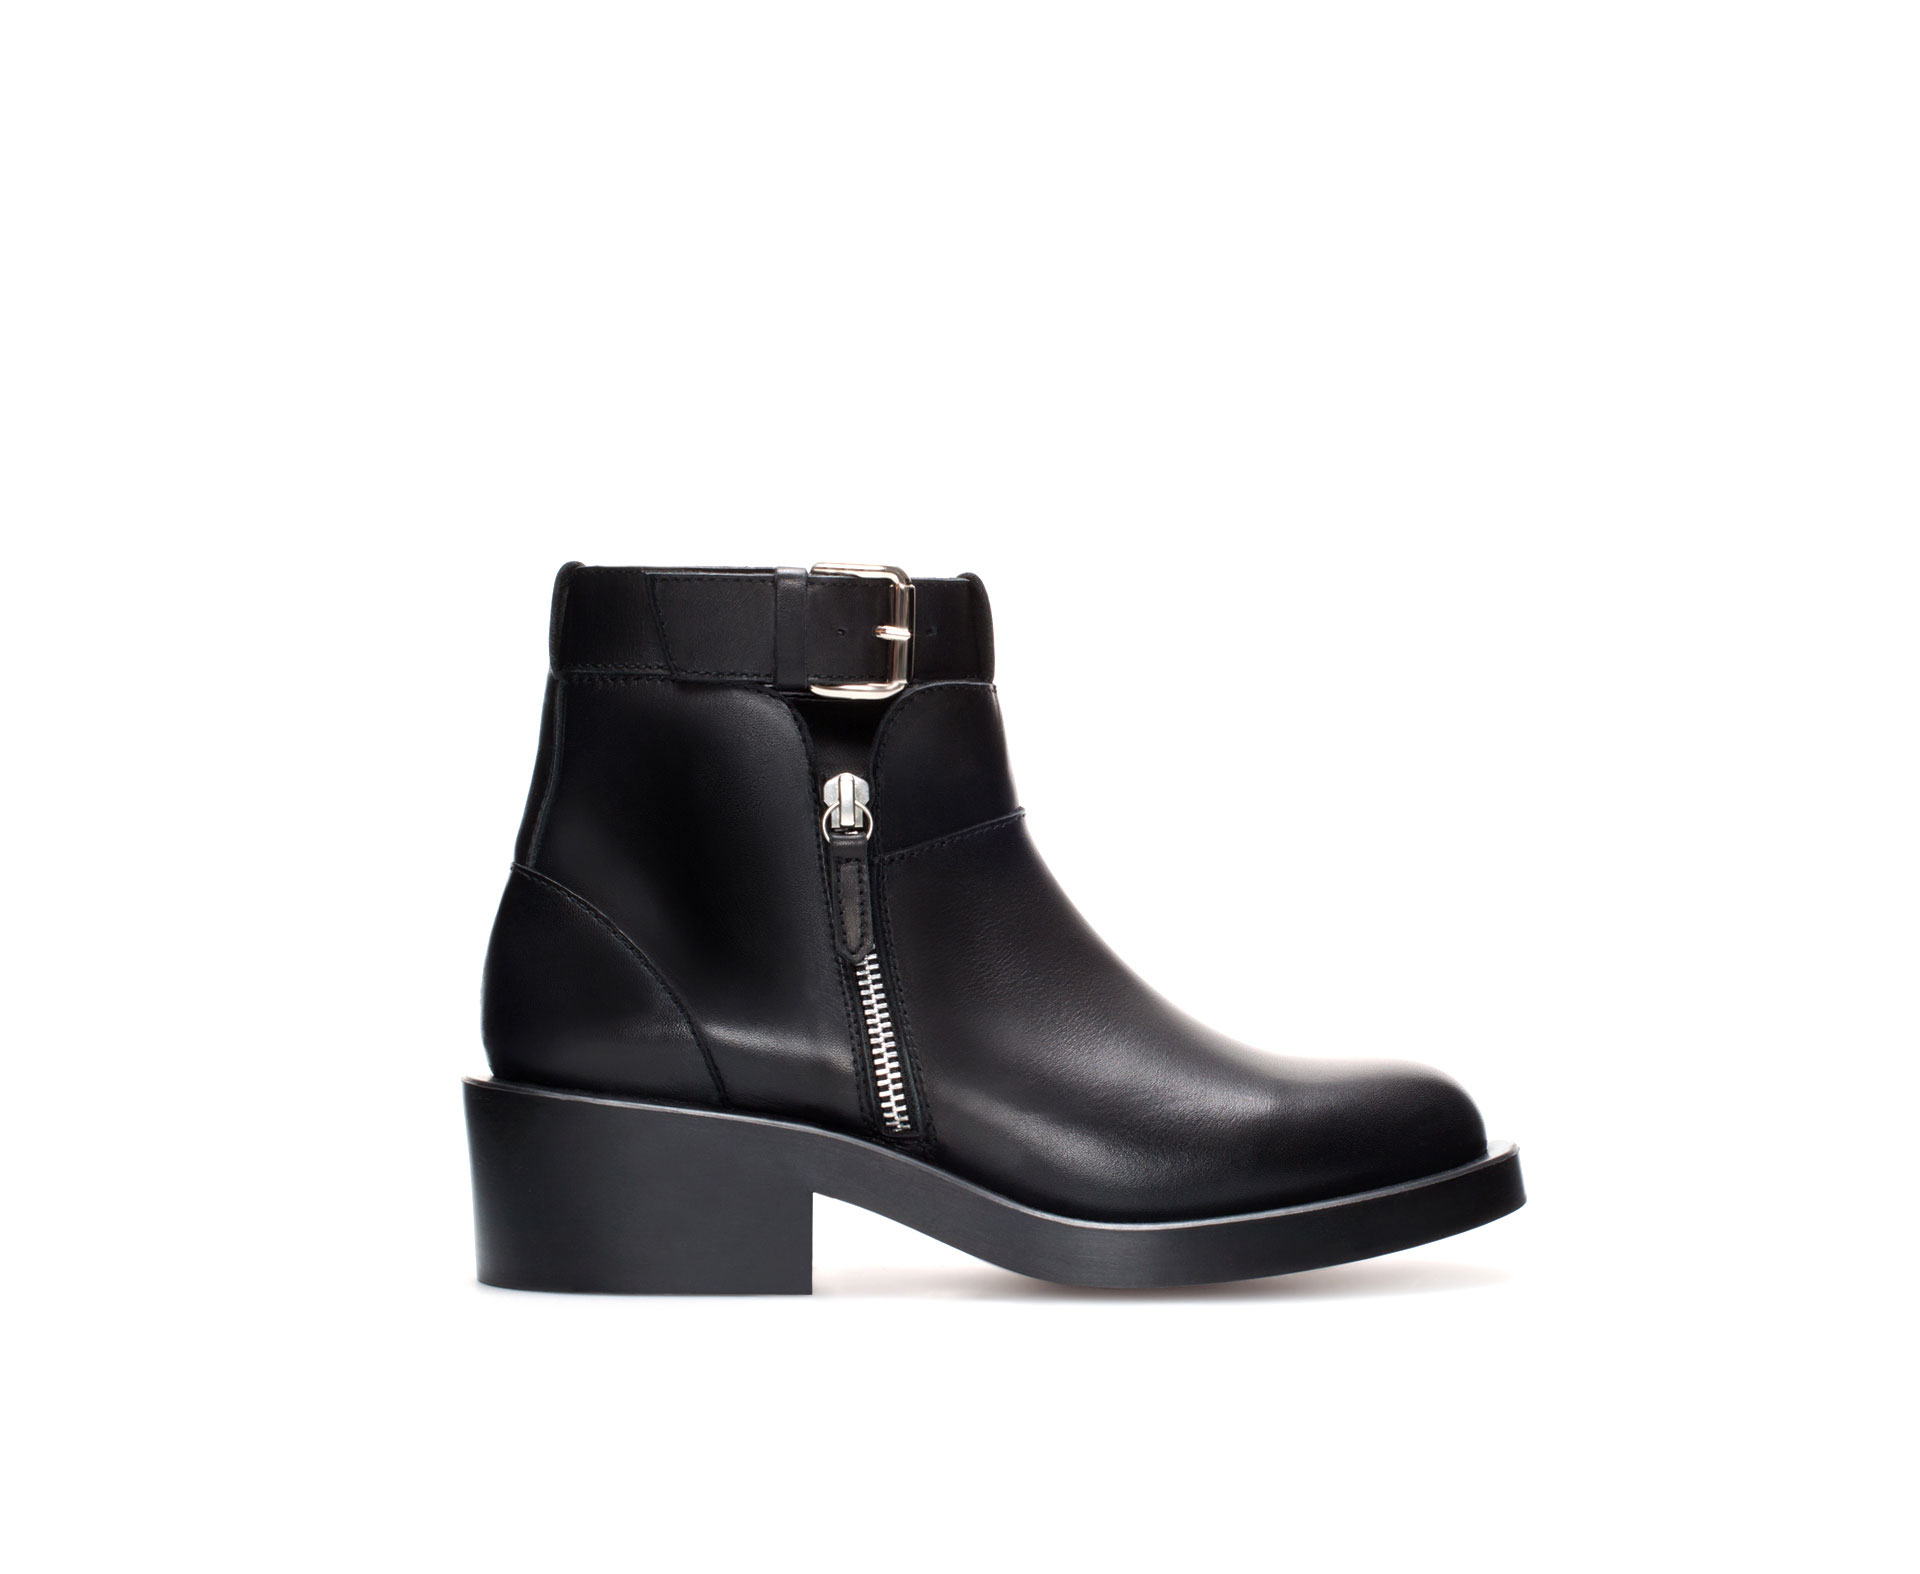 Zara Flat Leather Ankle Boot with Buckle in Black | Lyst